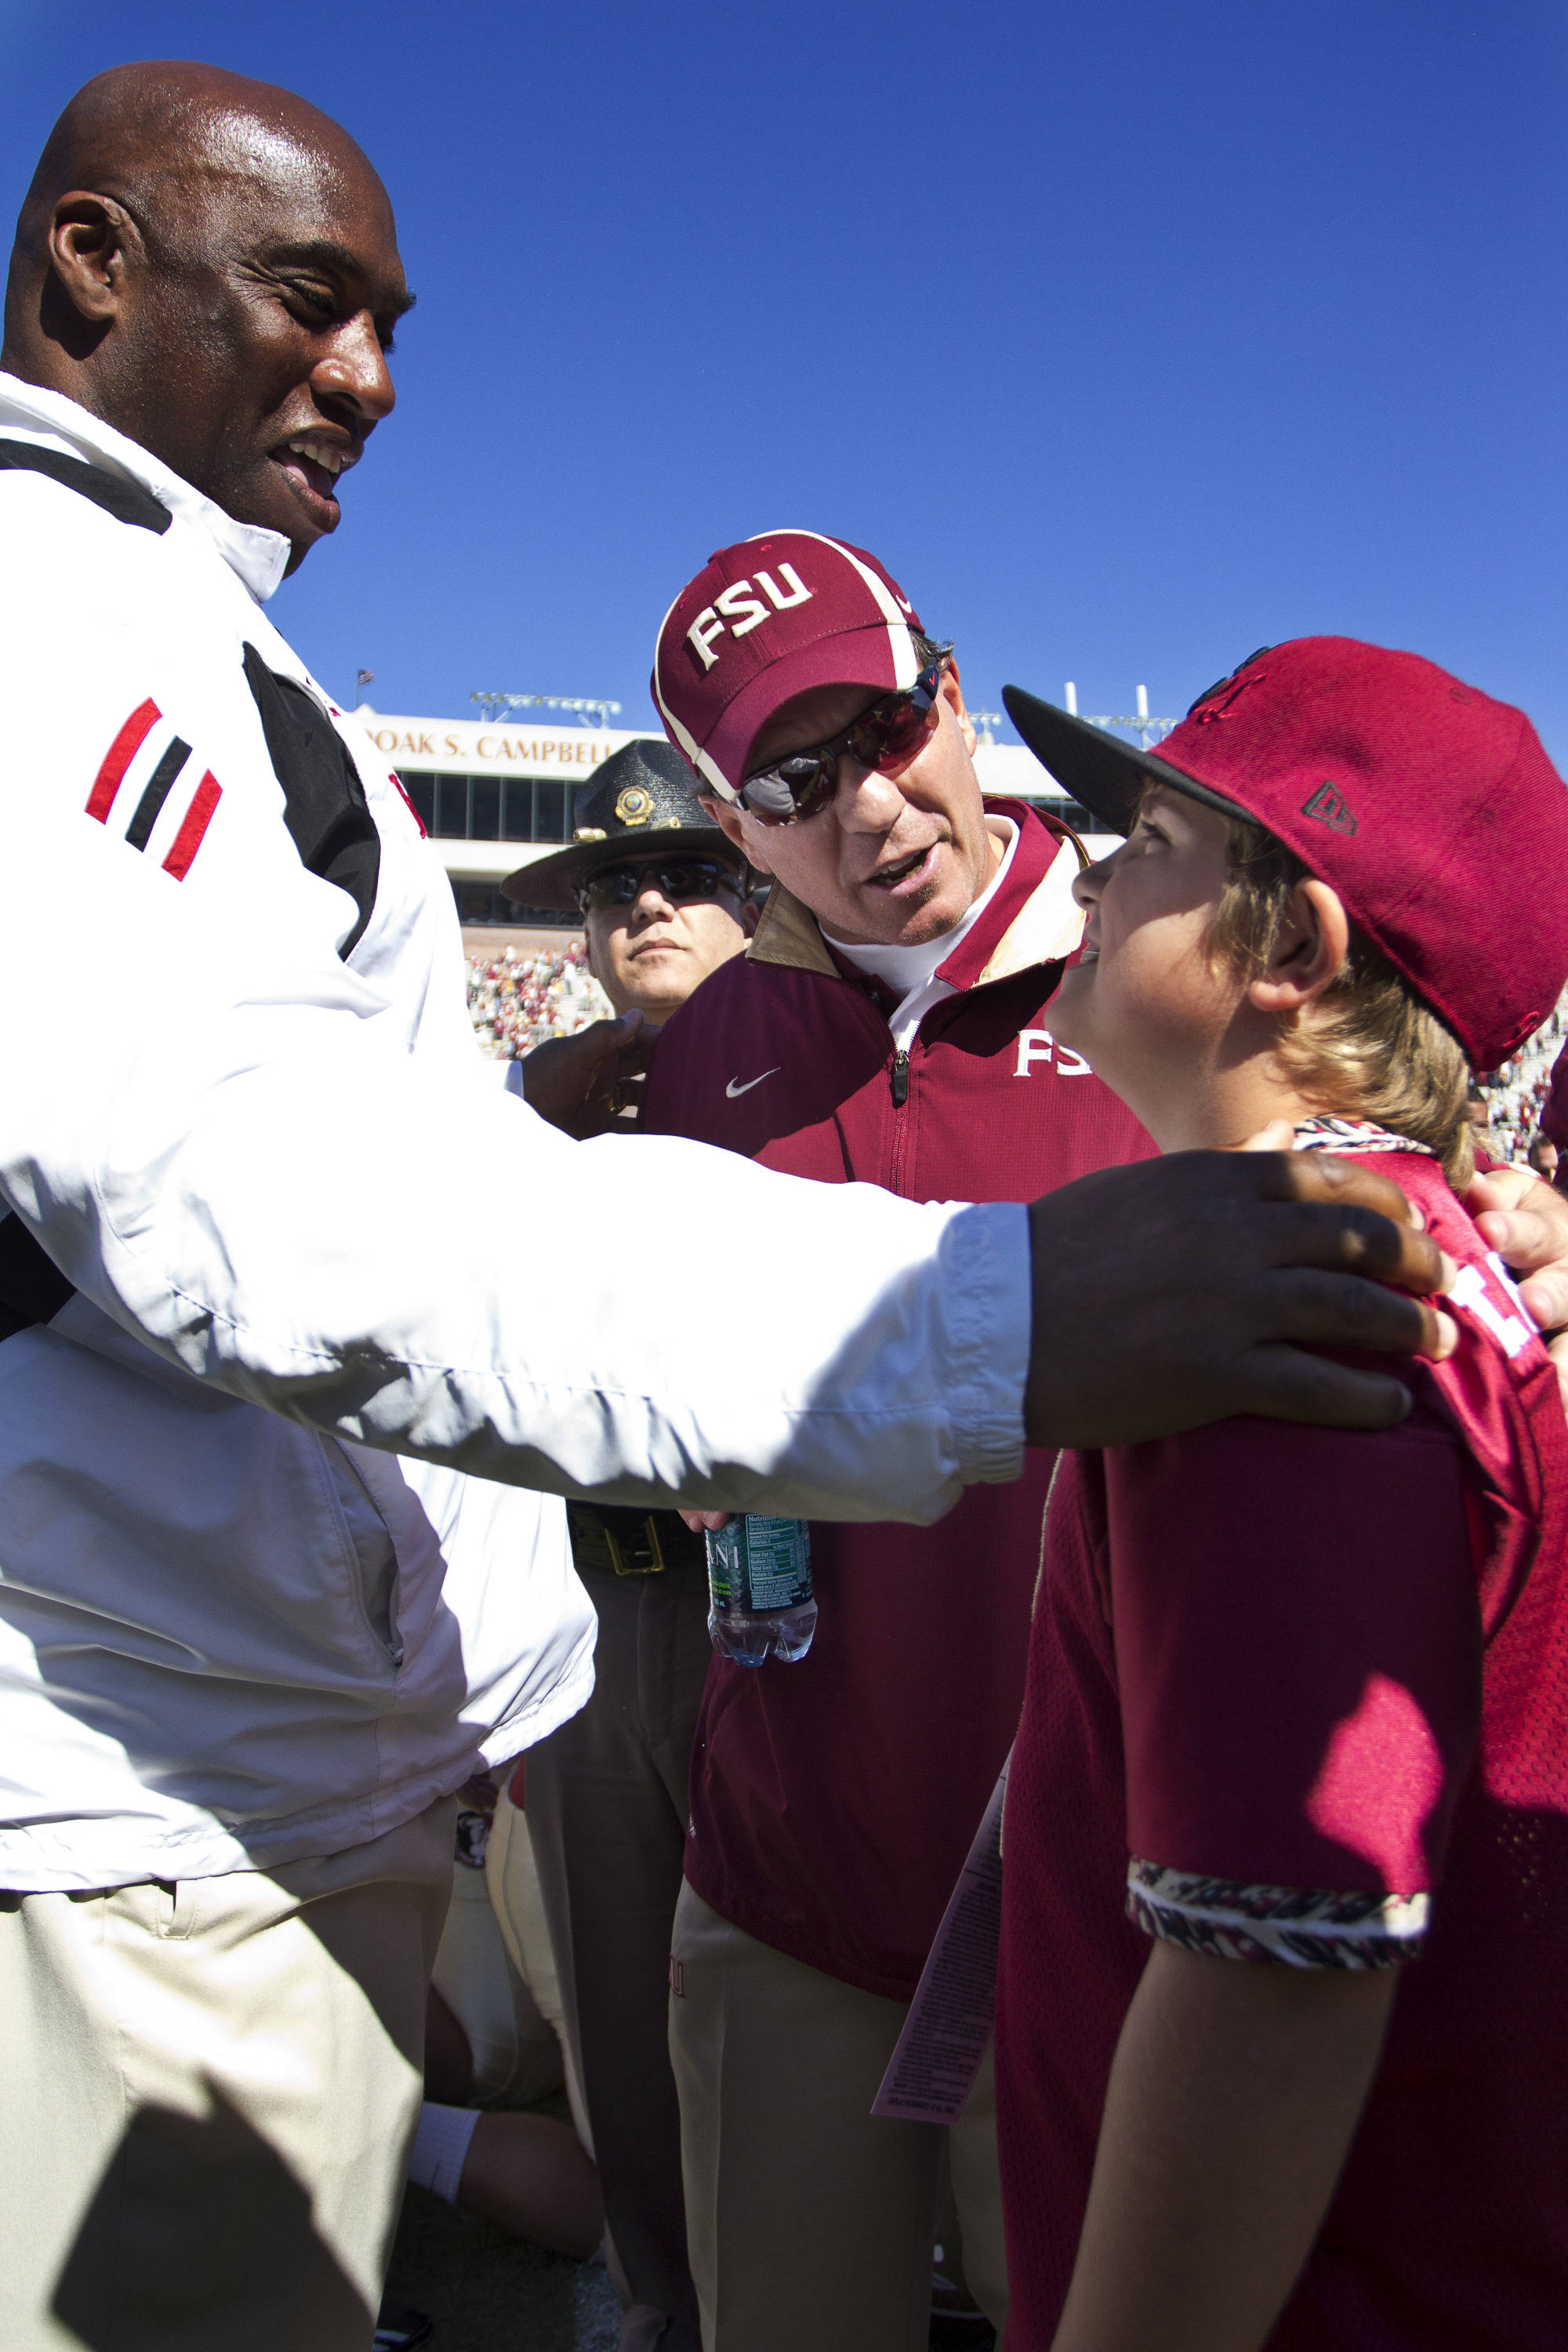 Jimbo Fisher during the post-game celebration after the football game against NC State on October 29, 2011.